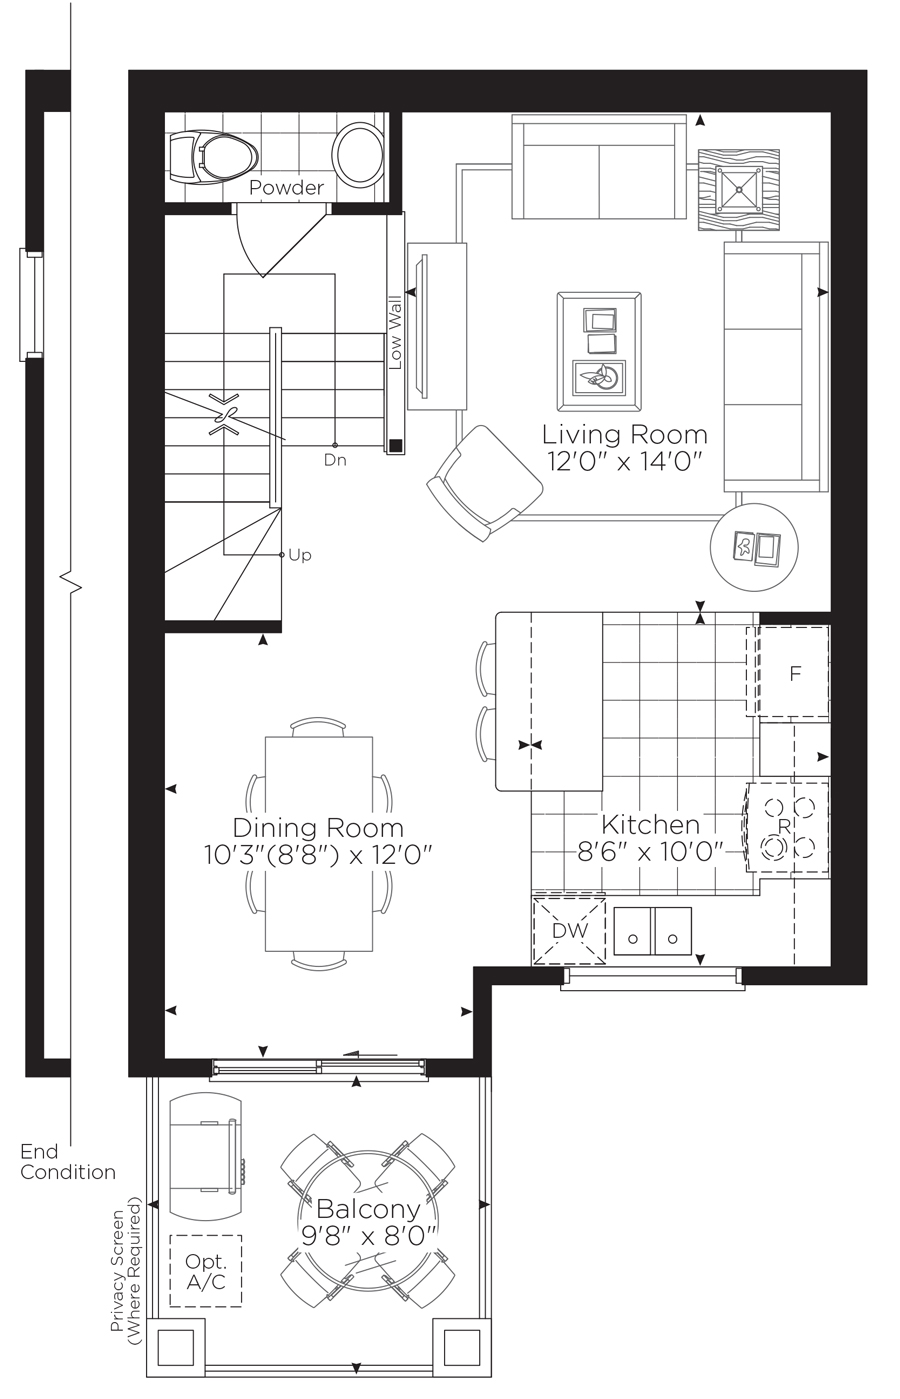 Minto homes floor plans minto terrace home floor plan for 100 taunton terrace oshawa